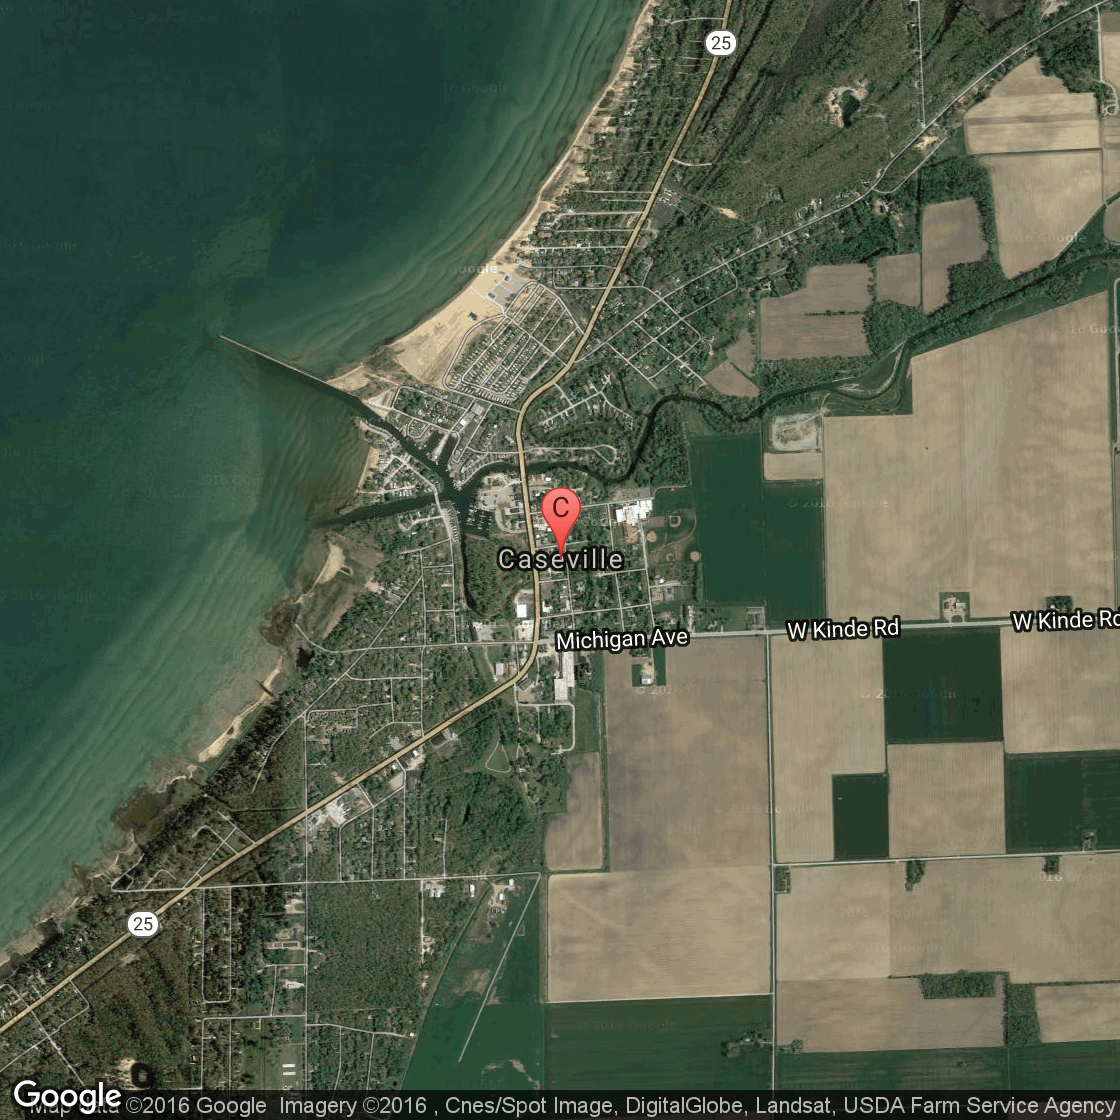 Restaurants in Caseville, Michigan | USA Today on